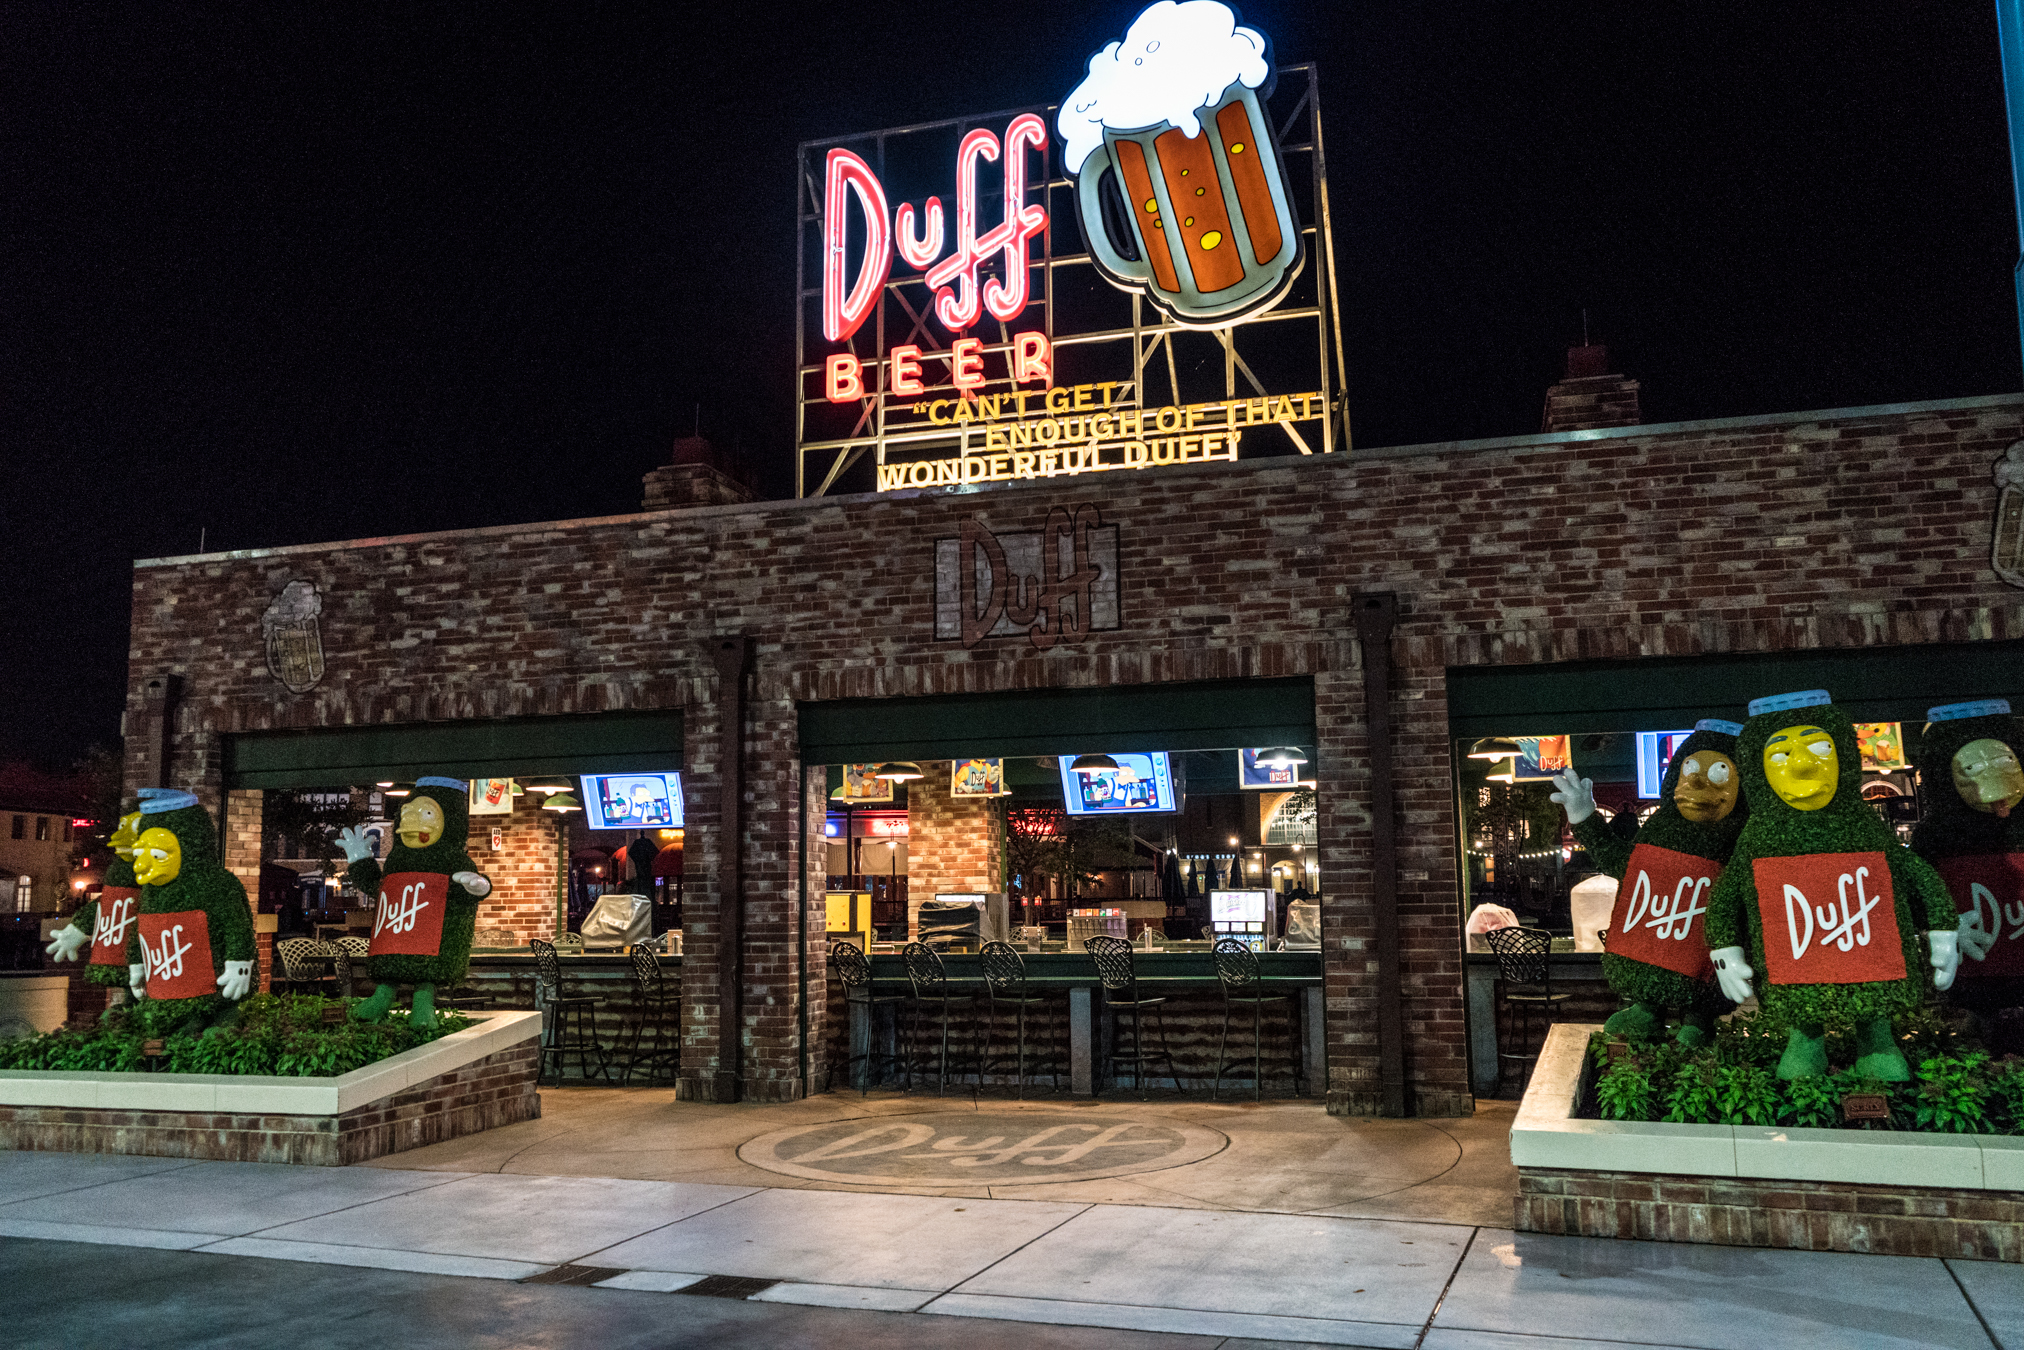 Duff Brewery at night